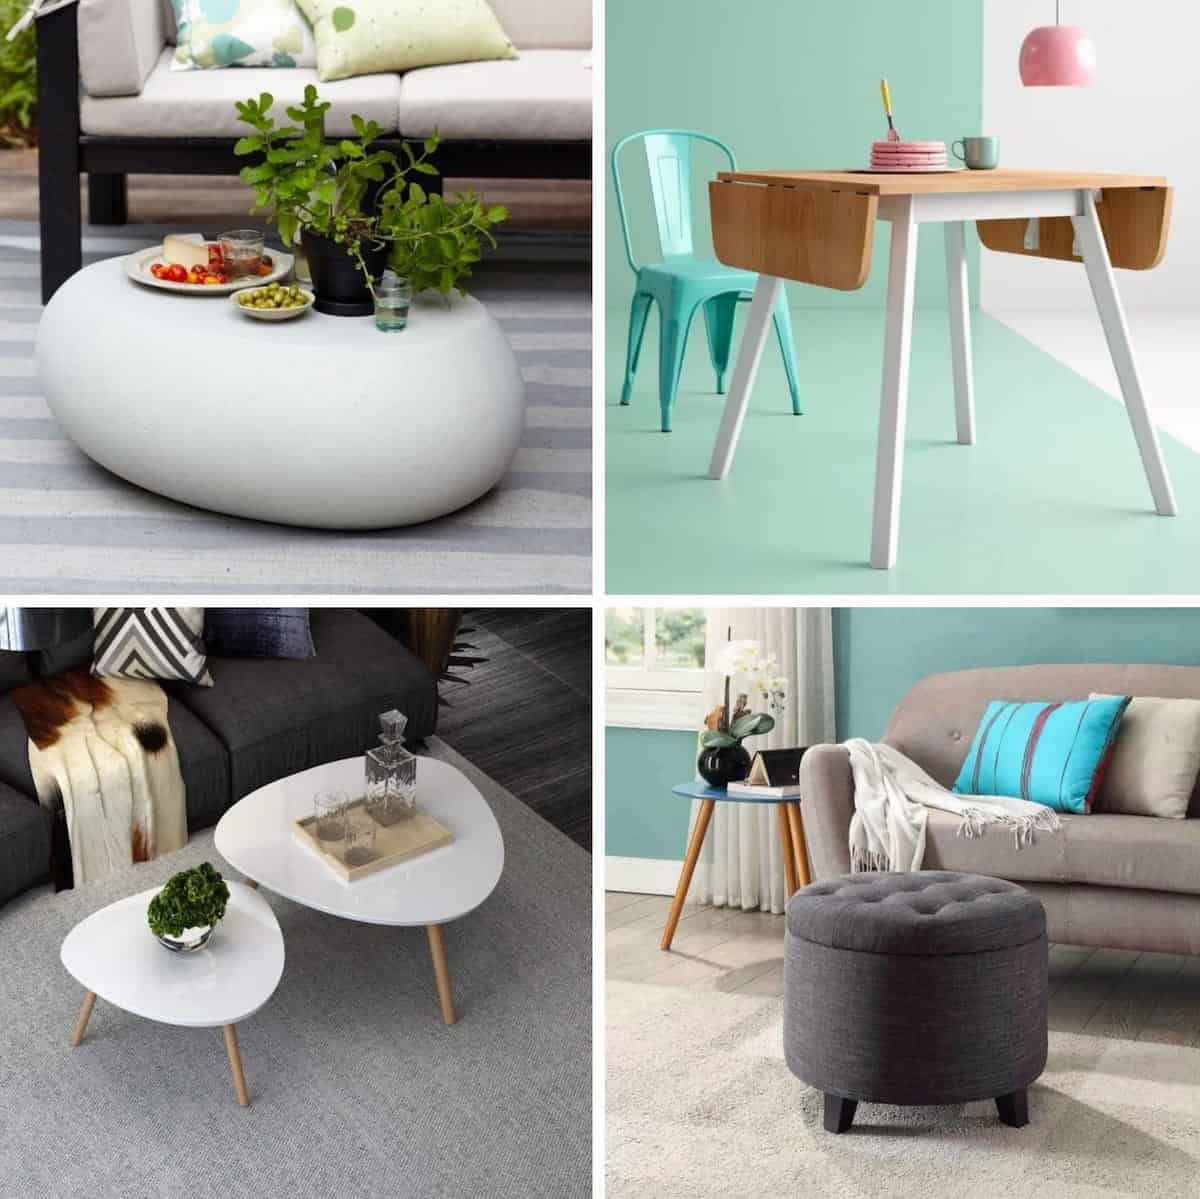 Interior Design 2021: New Solutions, Inspirational Ideas, Style Trends